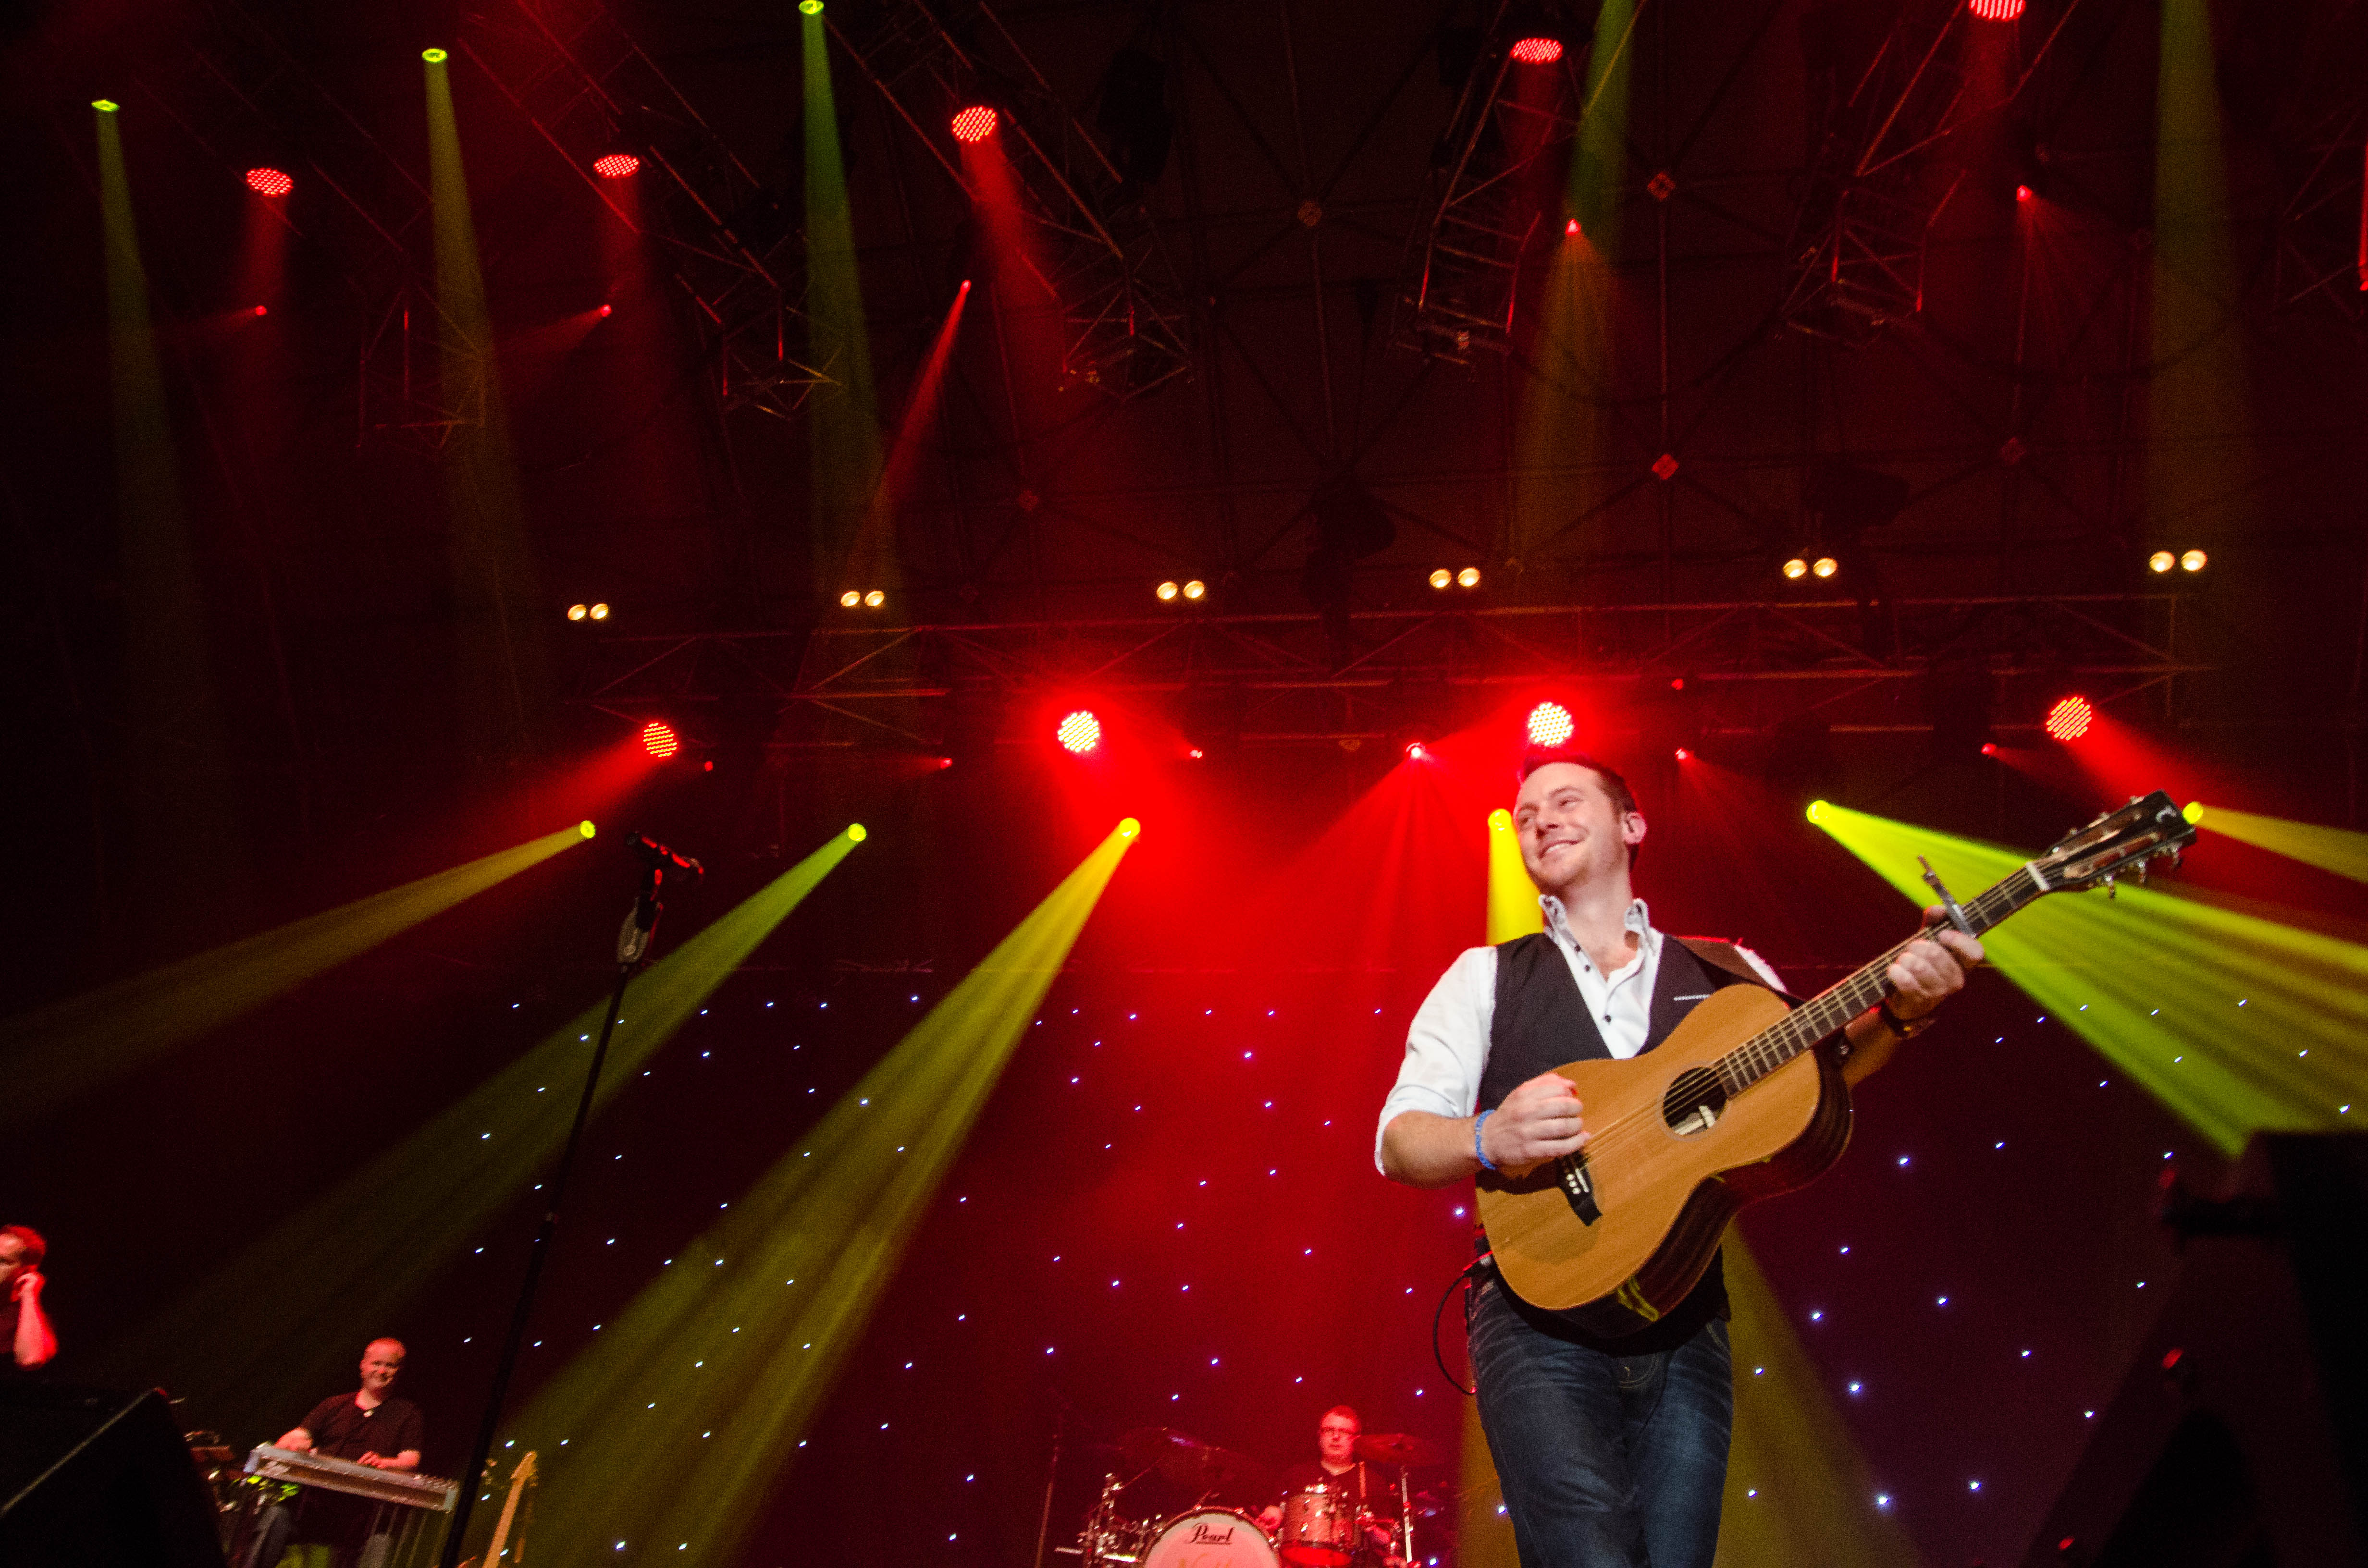 nathan-carter-at-the-marquee-cork-by-sean-smyth-15-6-14-24-of-55